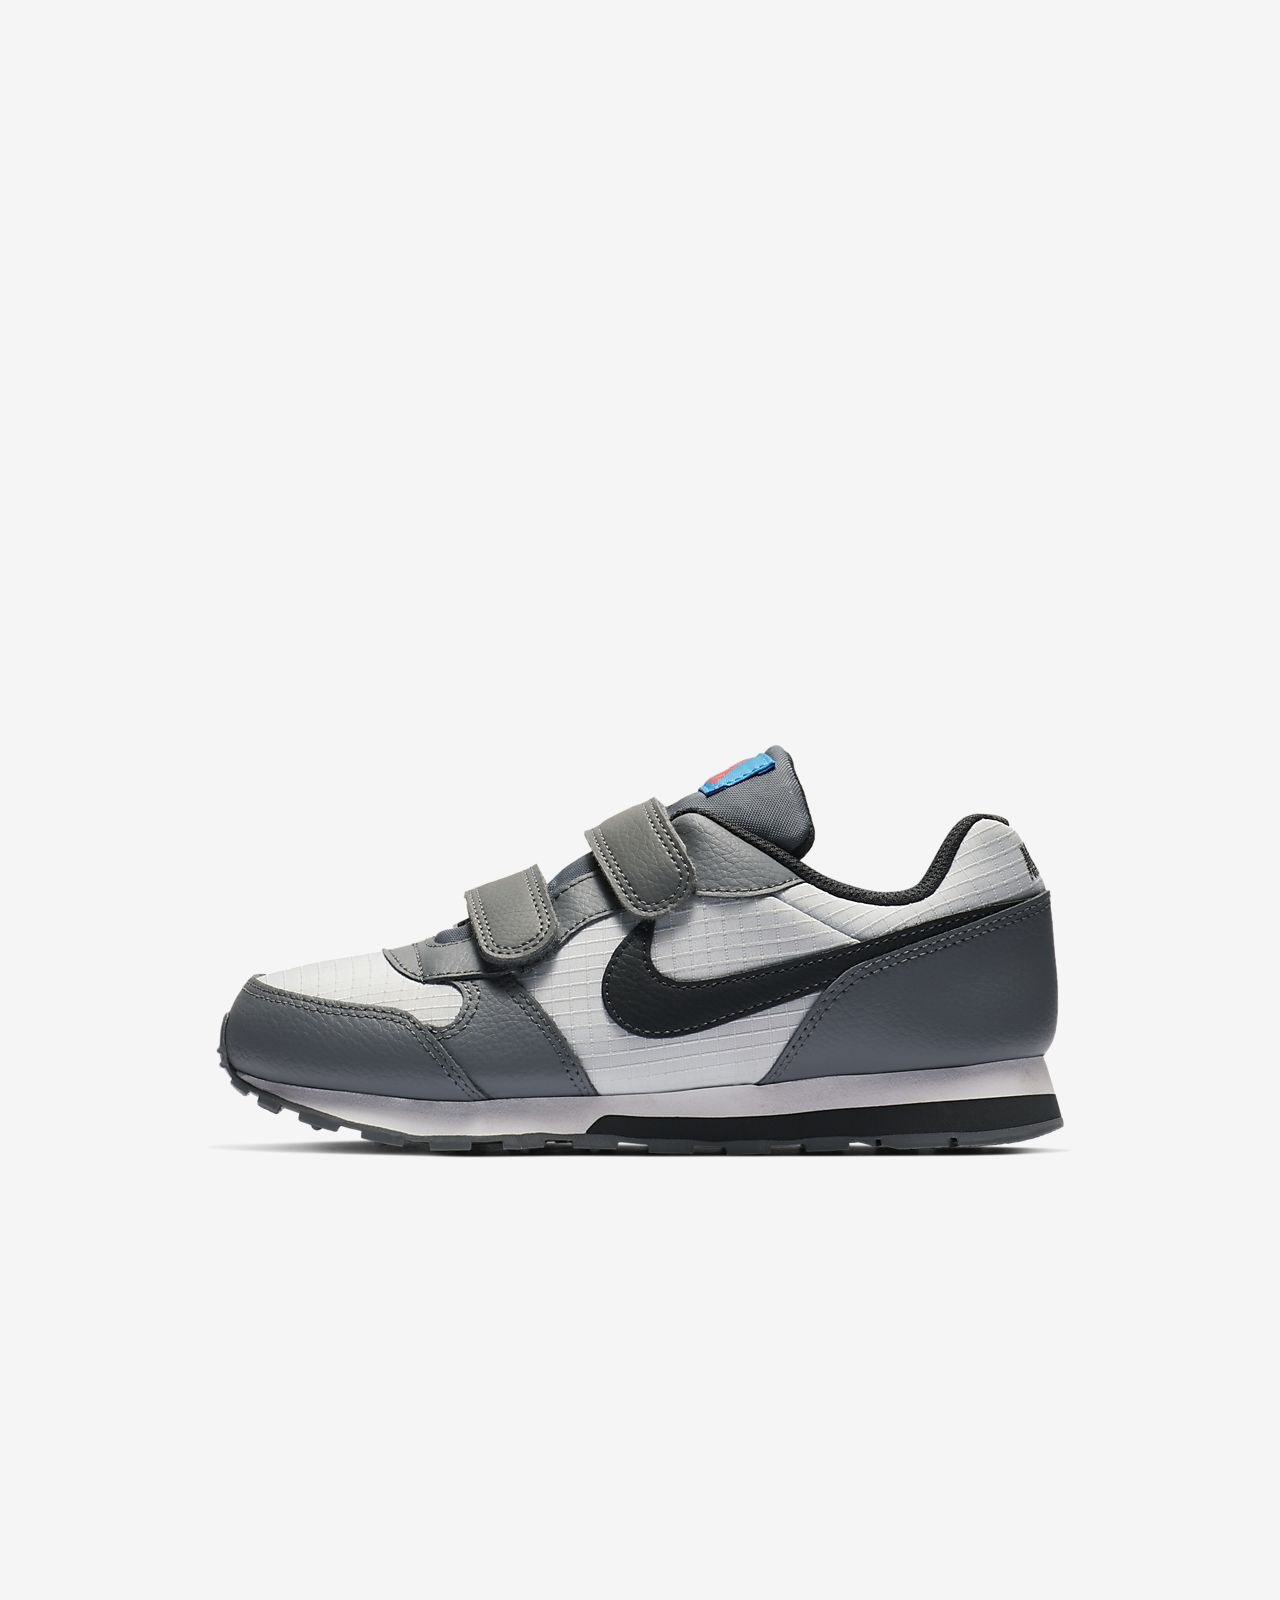 check out 8300c 1b62a ... Chaussure Nike MD Runner 2 pour Jeune enfant